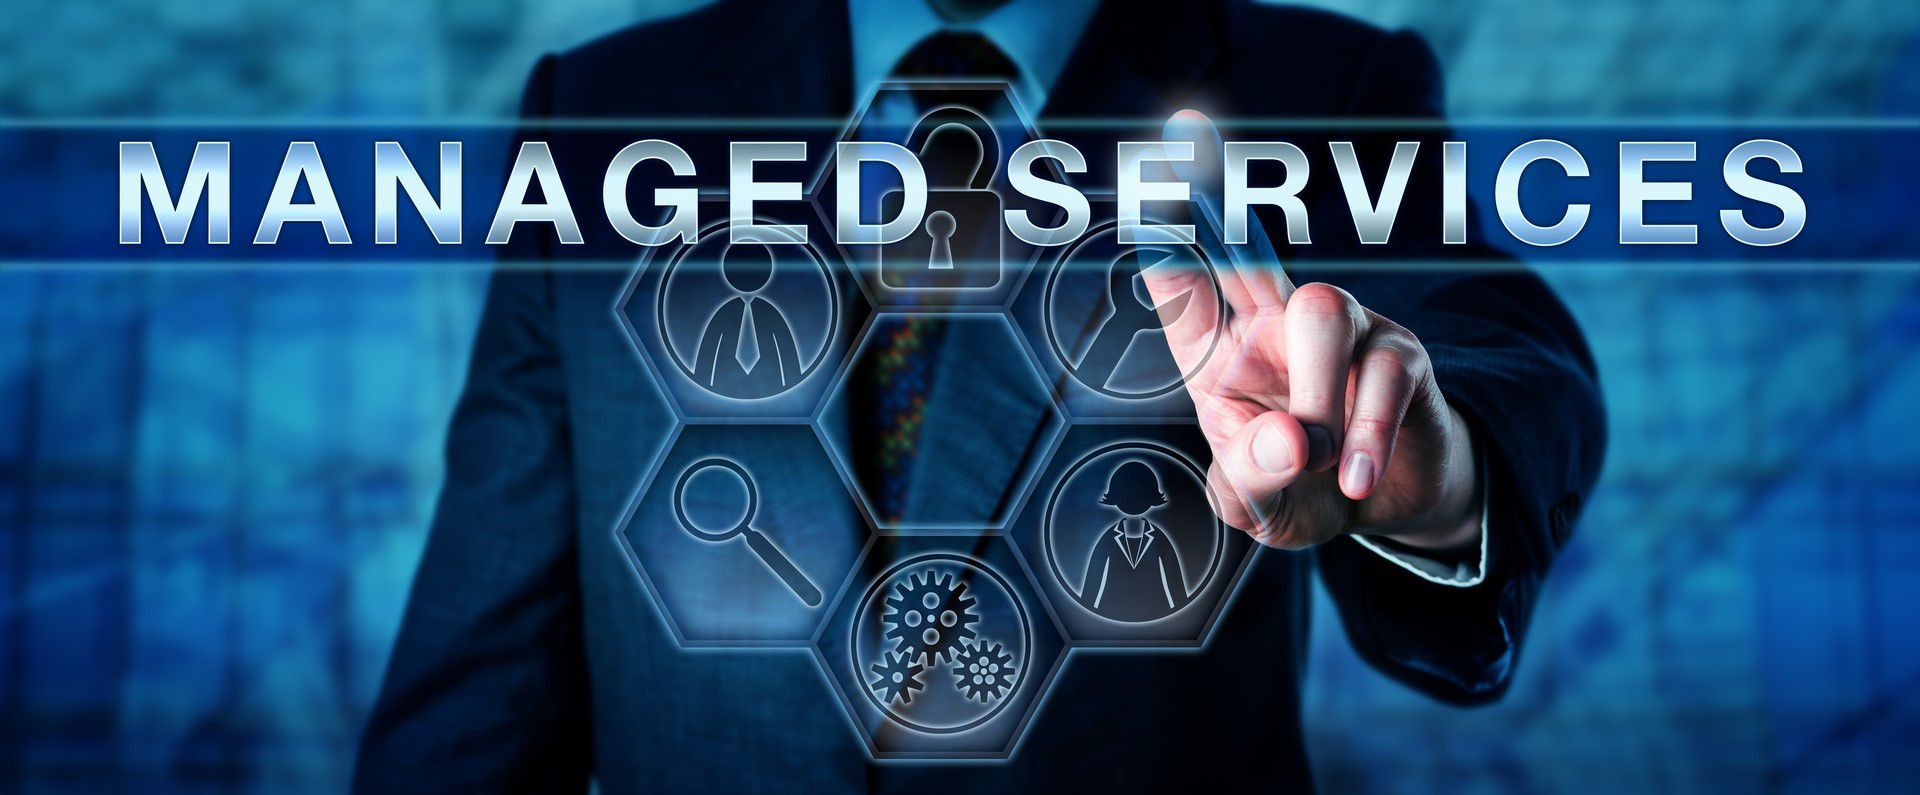 Managed It Services Brisbane